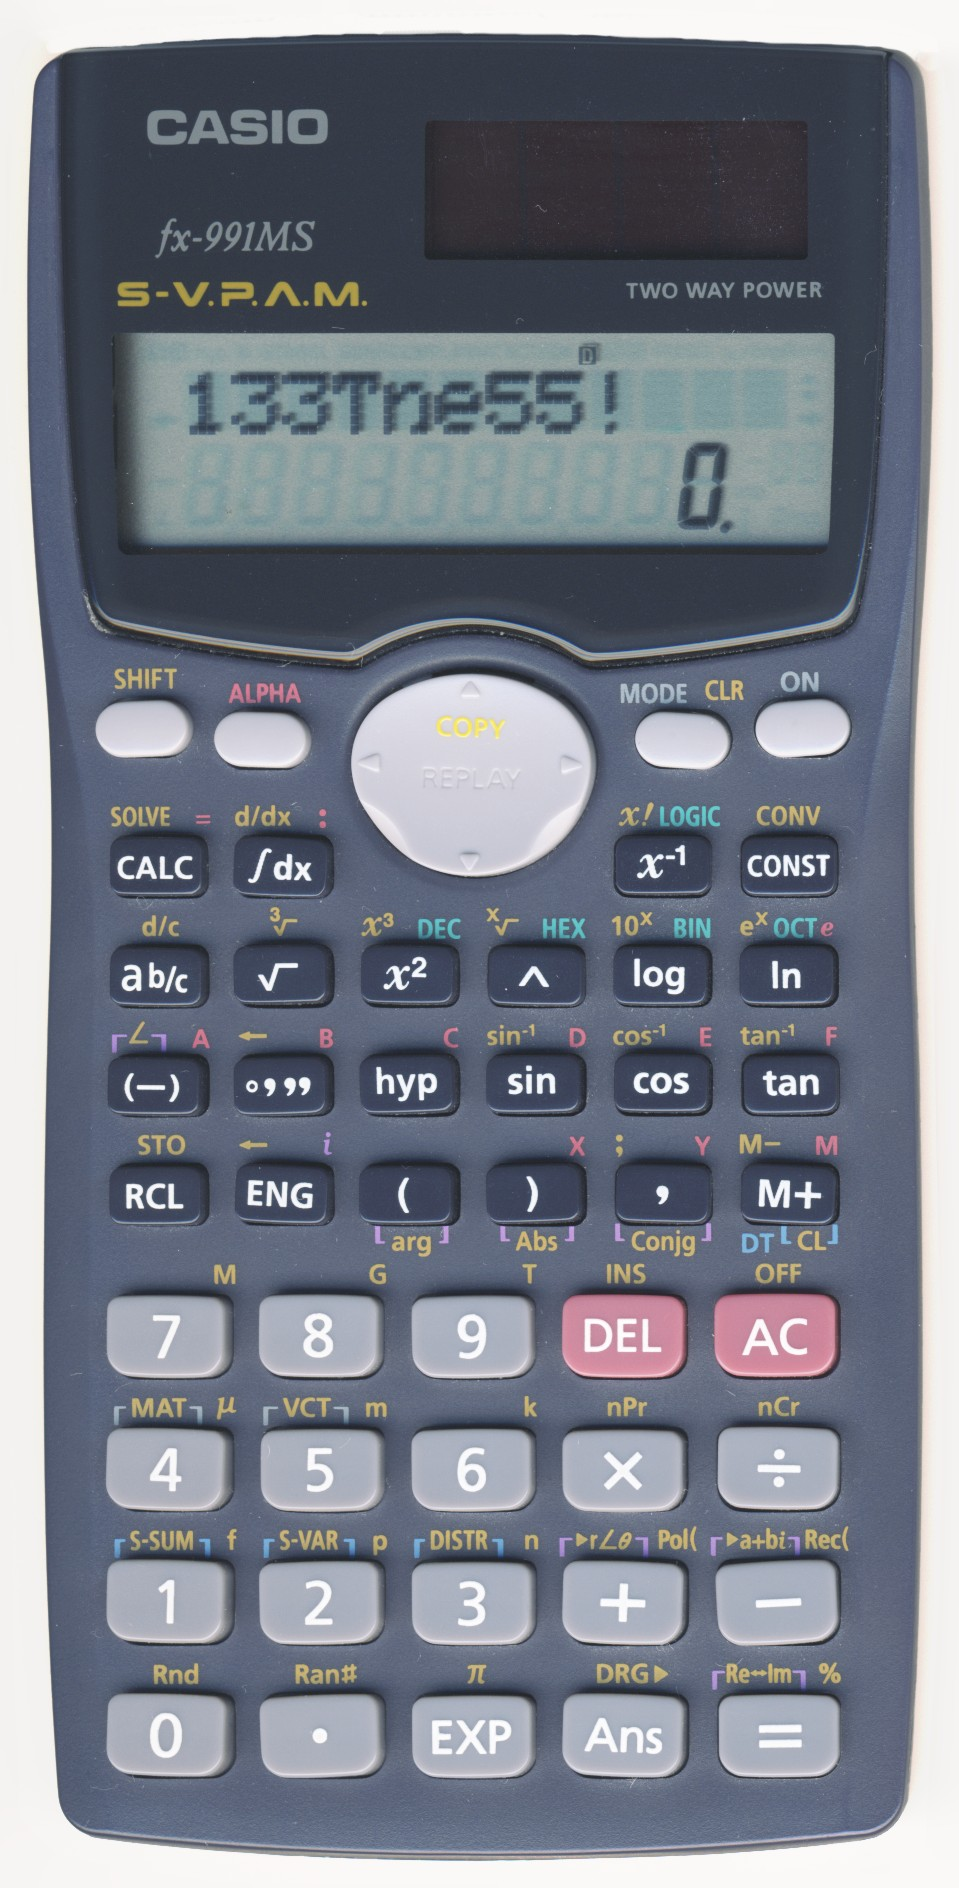 casio scientific calculator manual fx-570ms